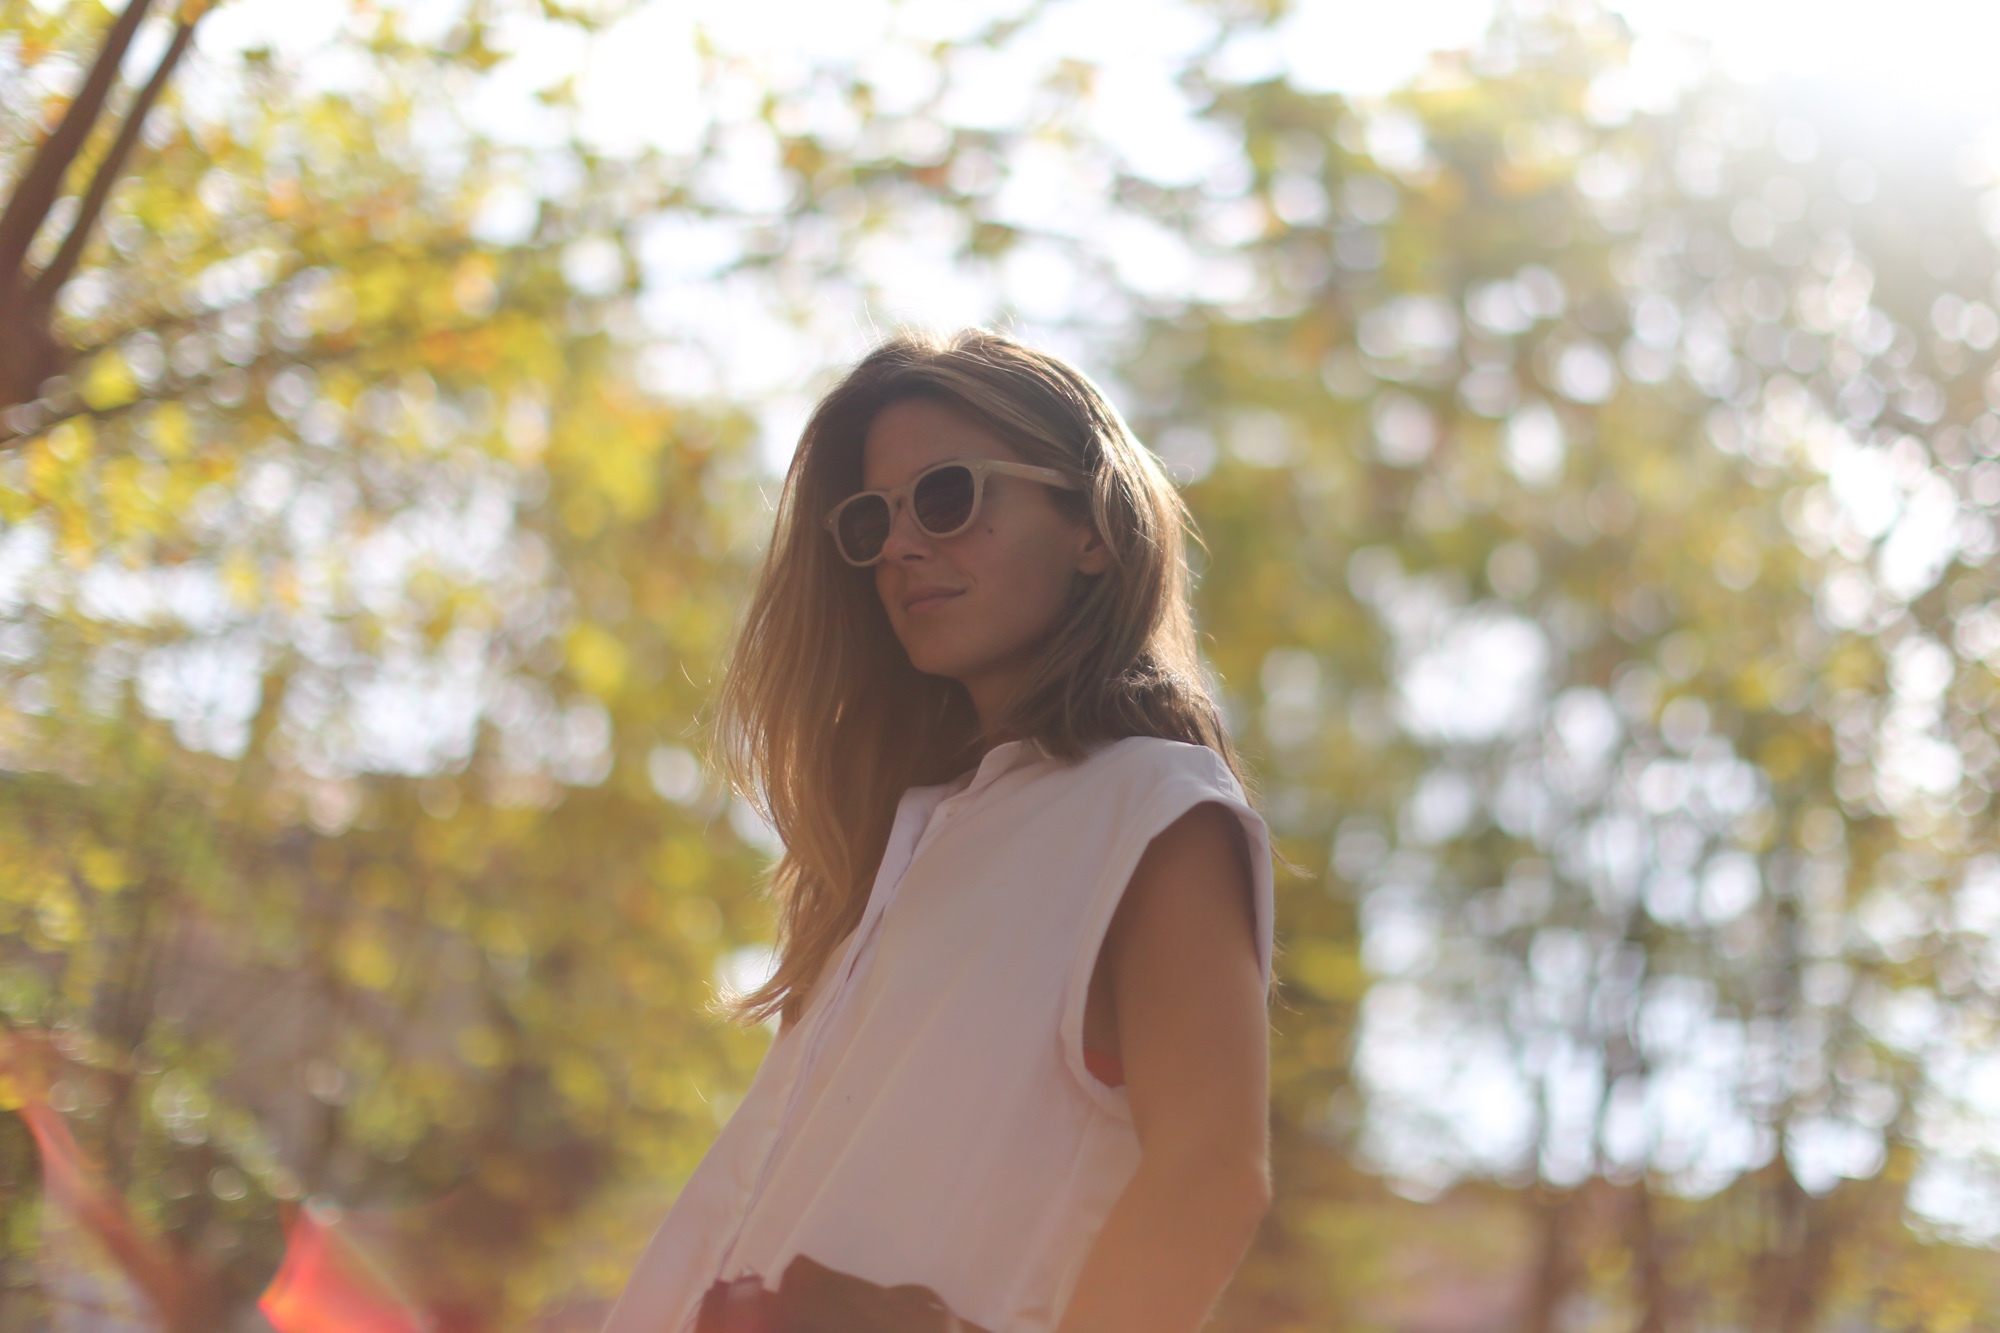 Clochet-streetstyle-zara-white-structured-shirt-culottes-everie-cph-11